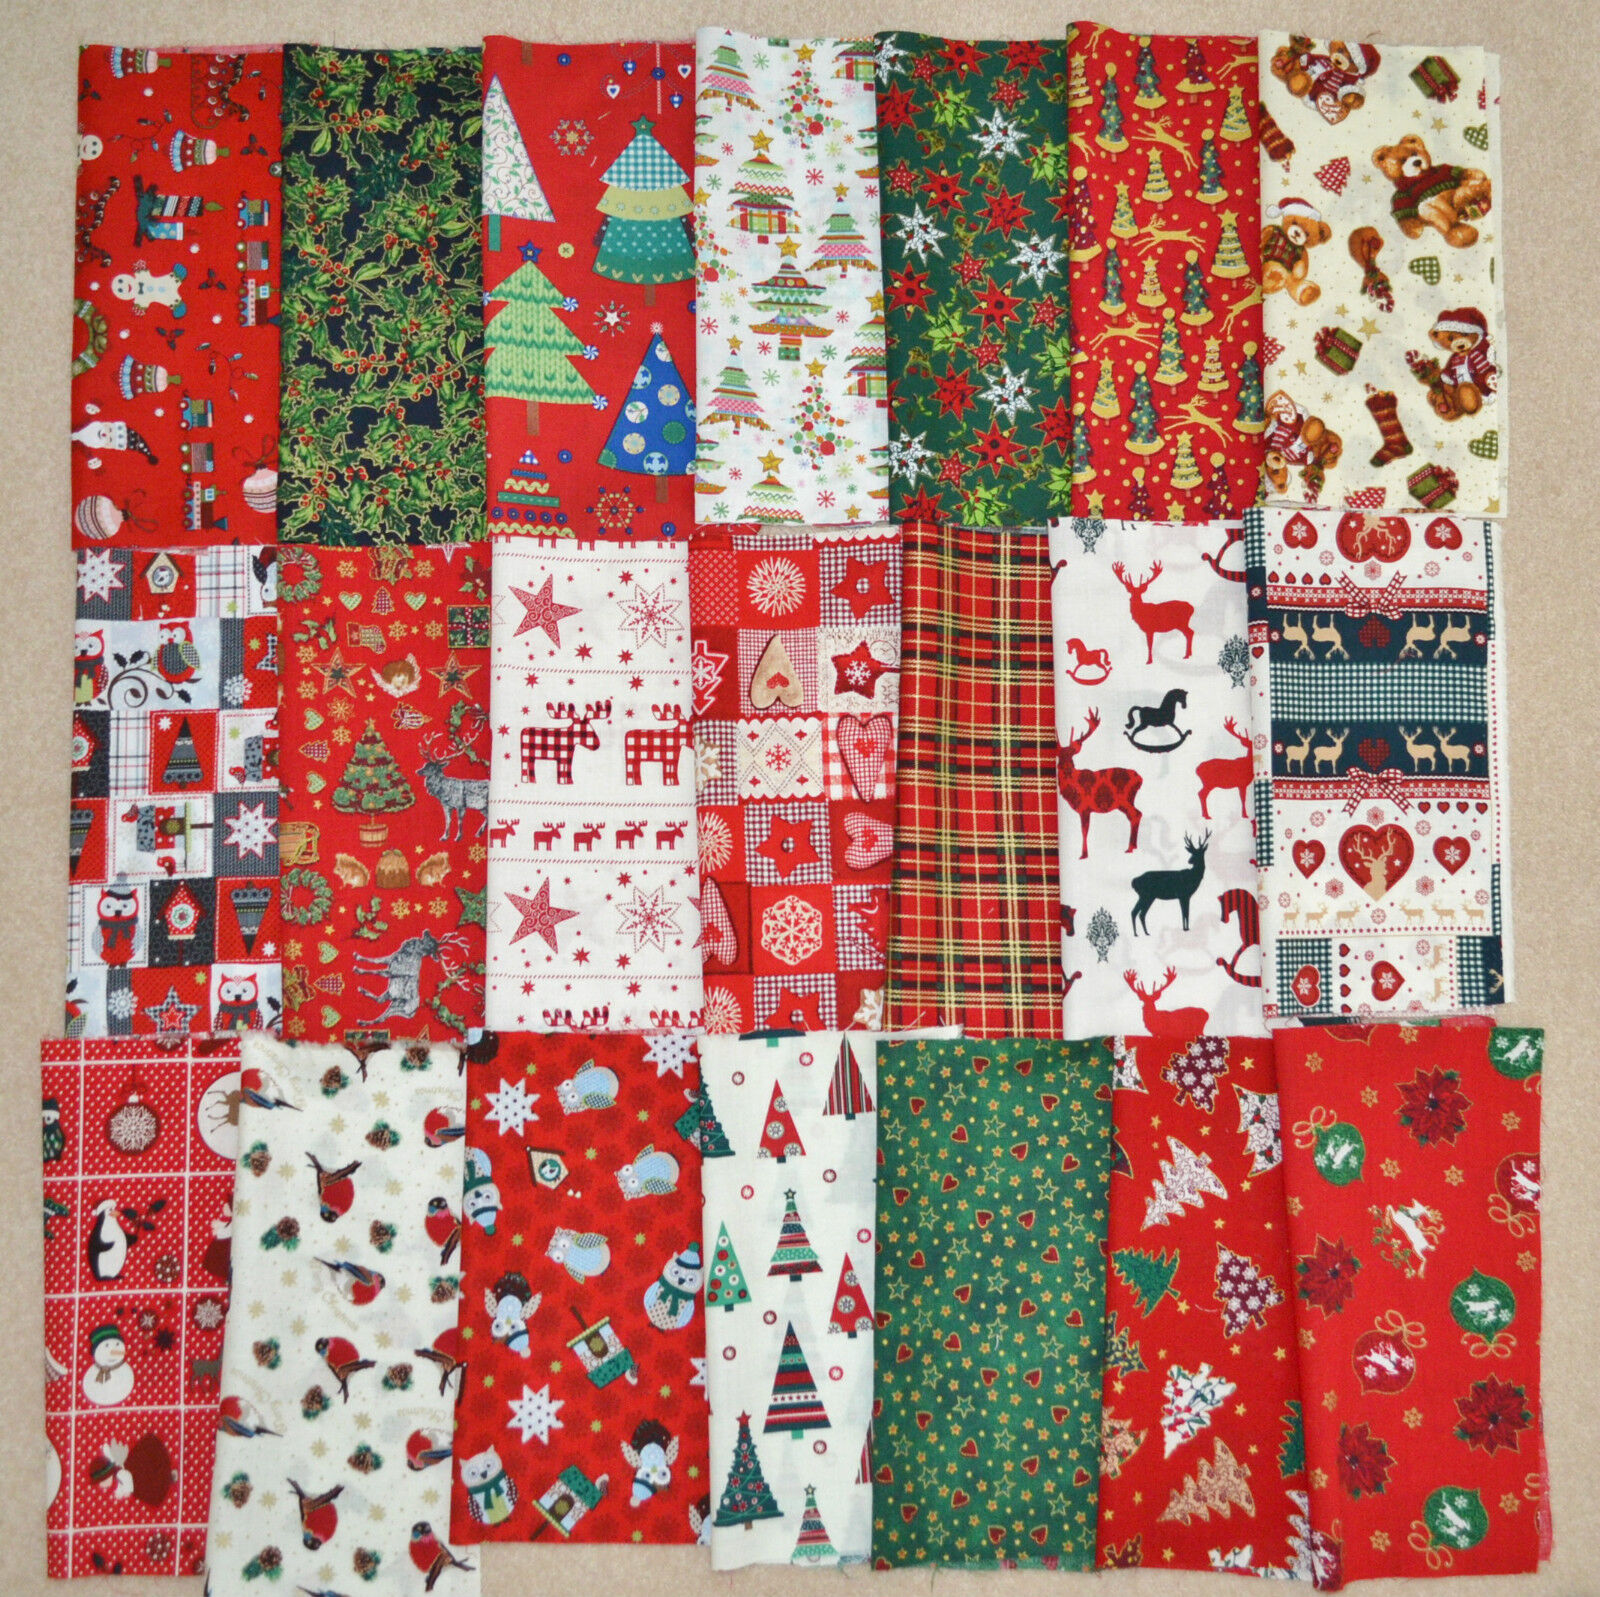 Christmas fabric patchwork quilting crafts remnants bundle for Fabric remnants